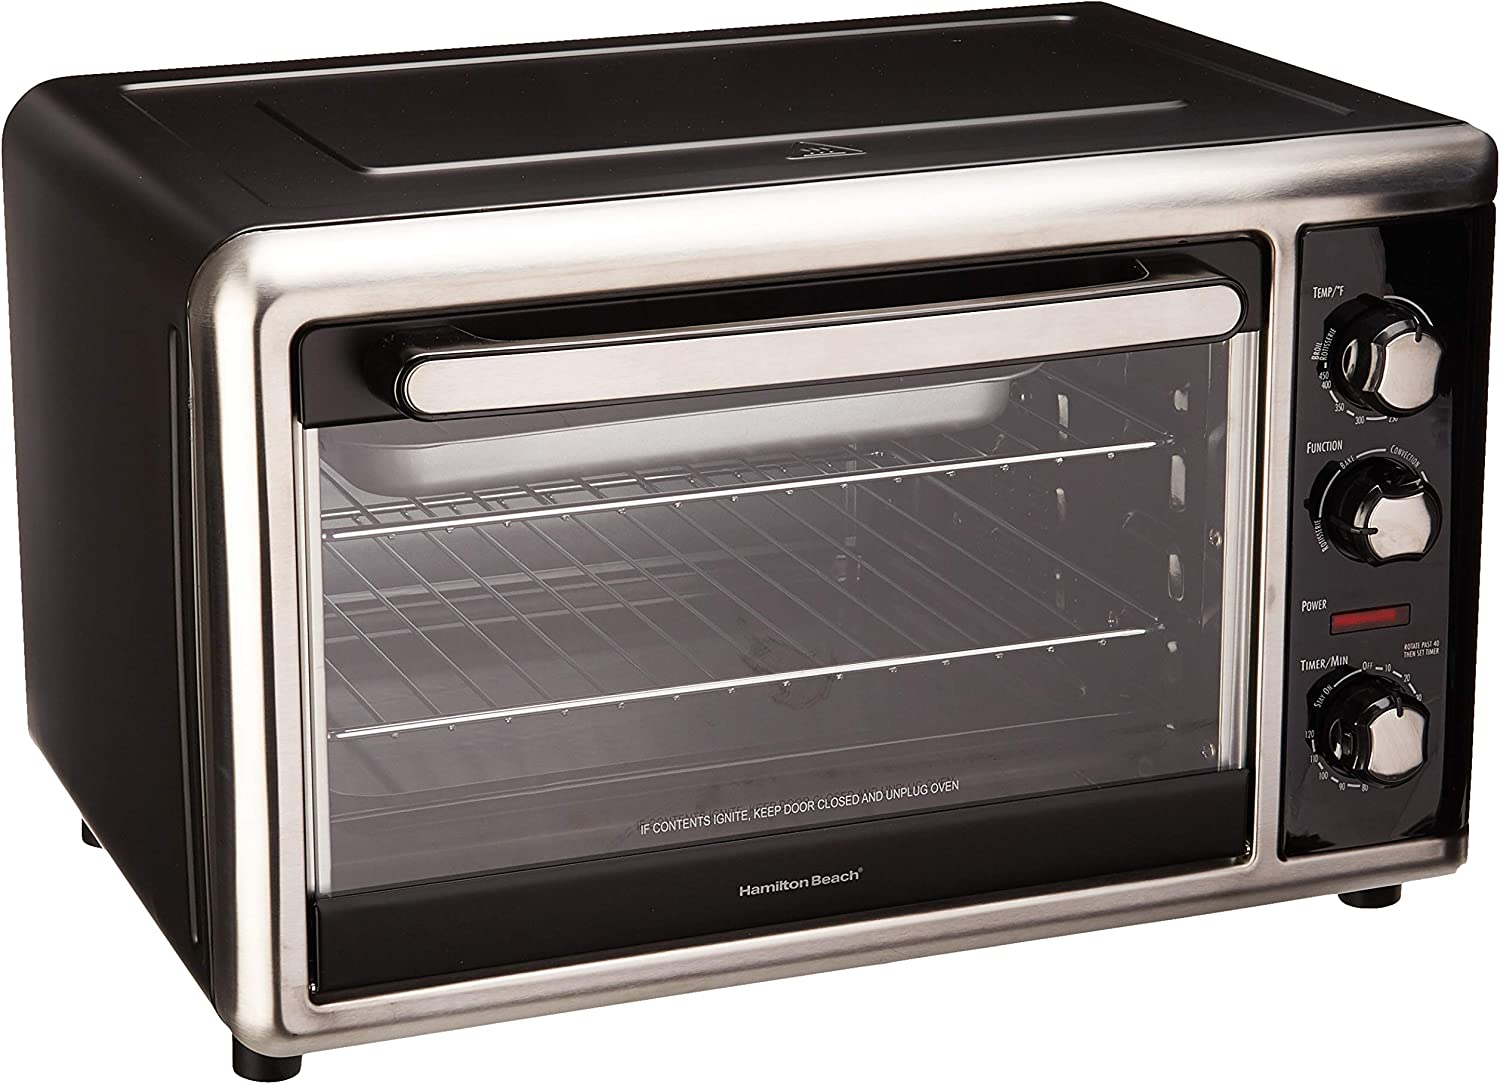 Hamilton Beach, Black 31105D Countertop Oven with Silver, Large